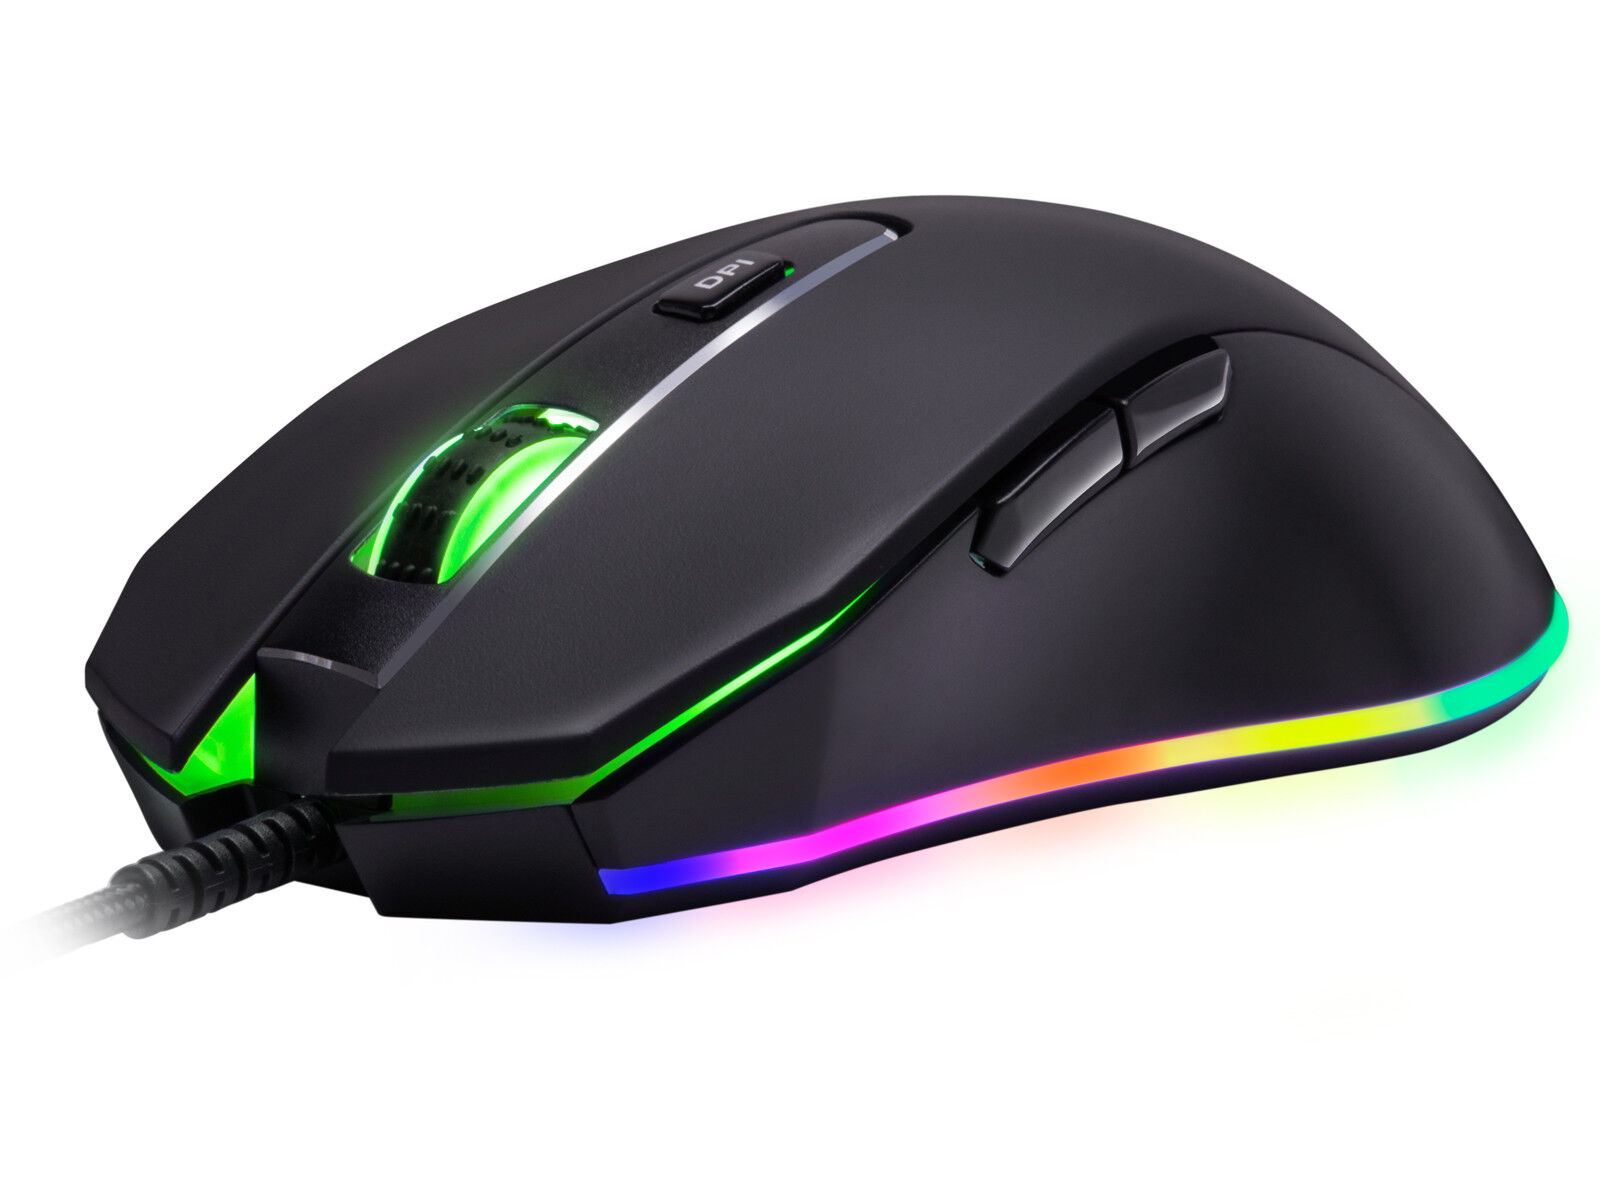 Rosewill Gaming Mouse 10000 dpi, RGB Backlit Optical Wired G